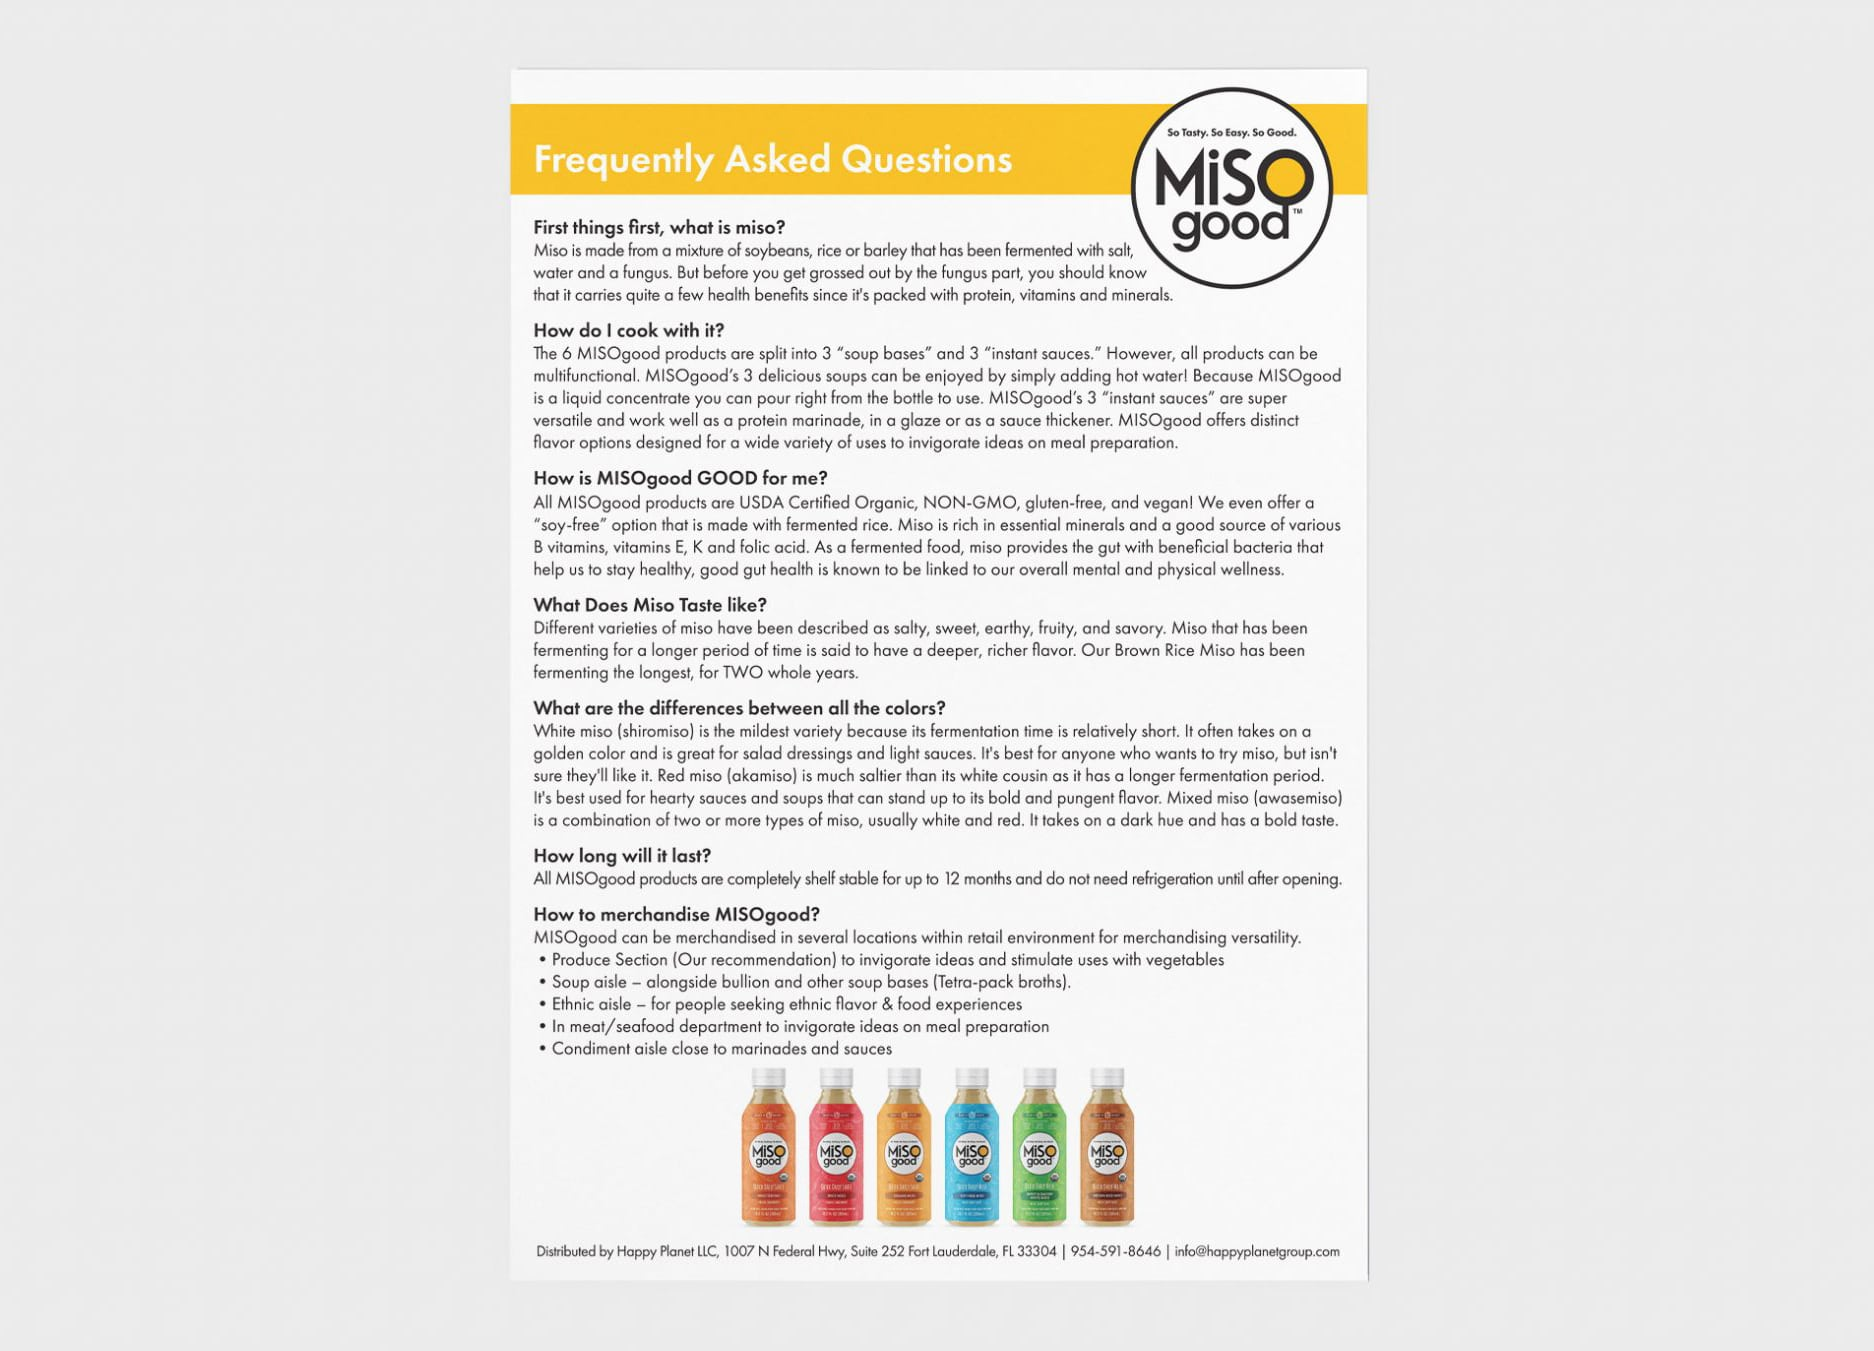 MiSOgood FAQ sheet design answering questions about the product such as, What is miso? and, How do I cook with it?